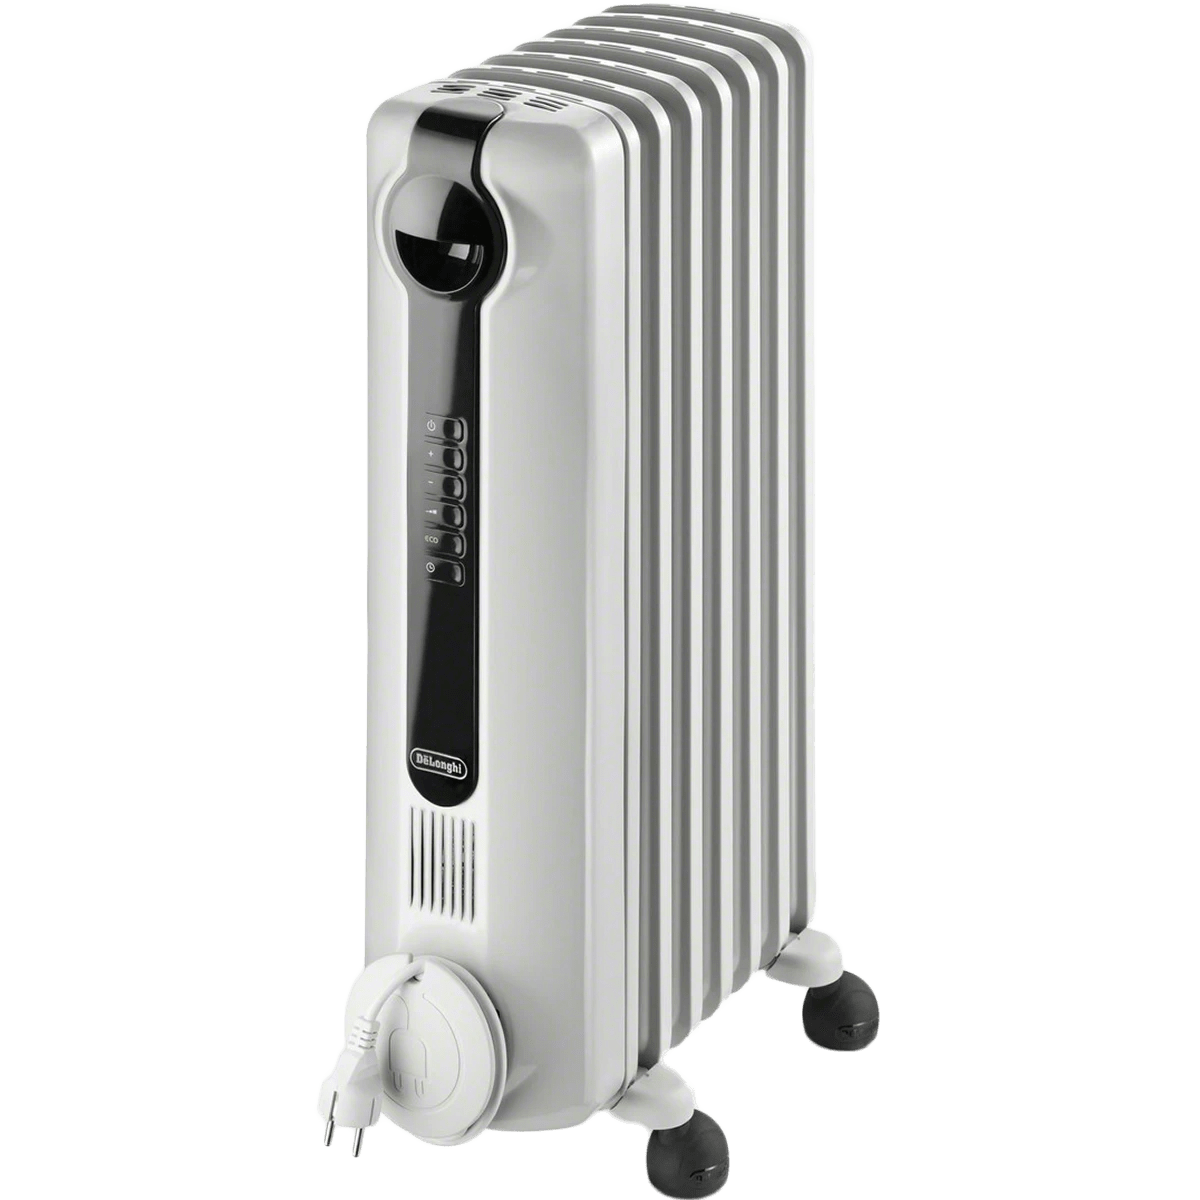 Wattage Radiator Delonghi Oil Filled Radiator Heater